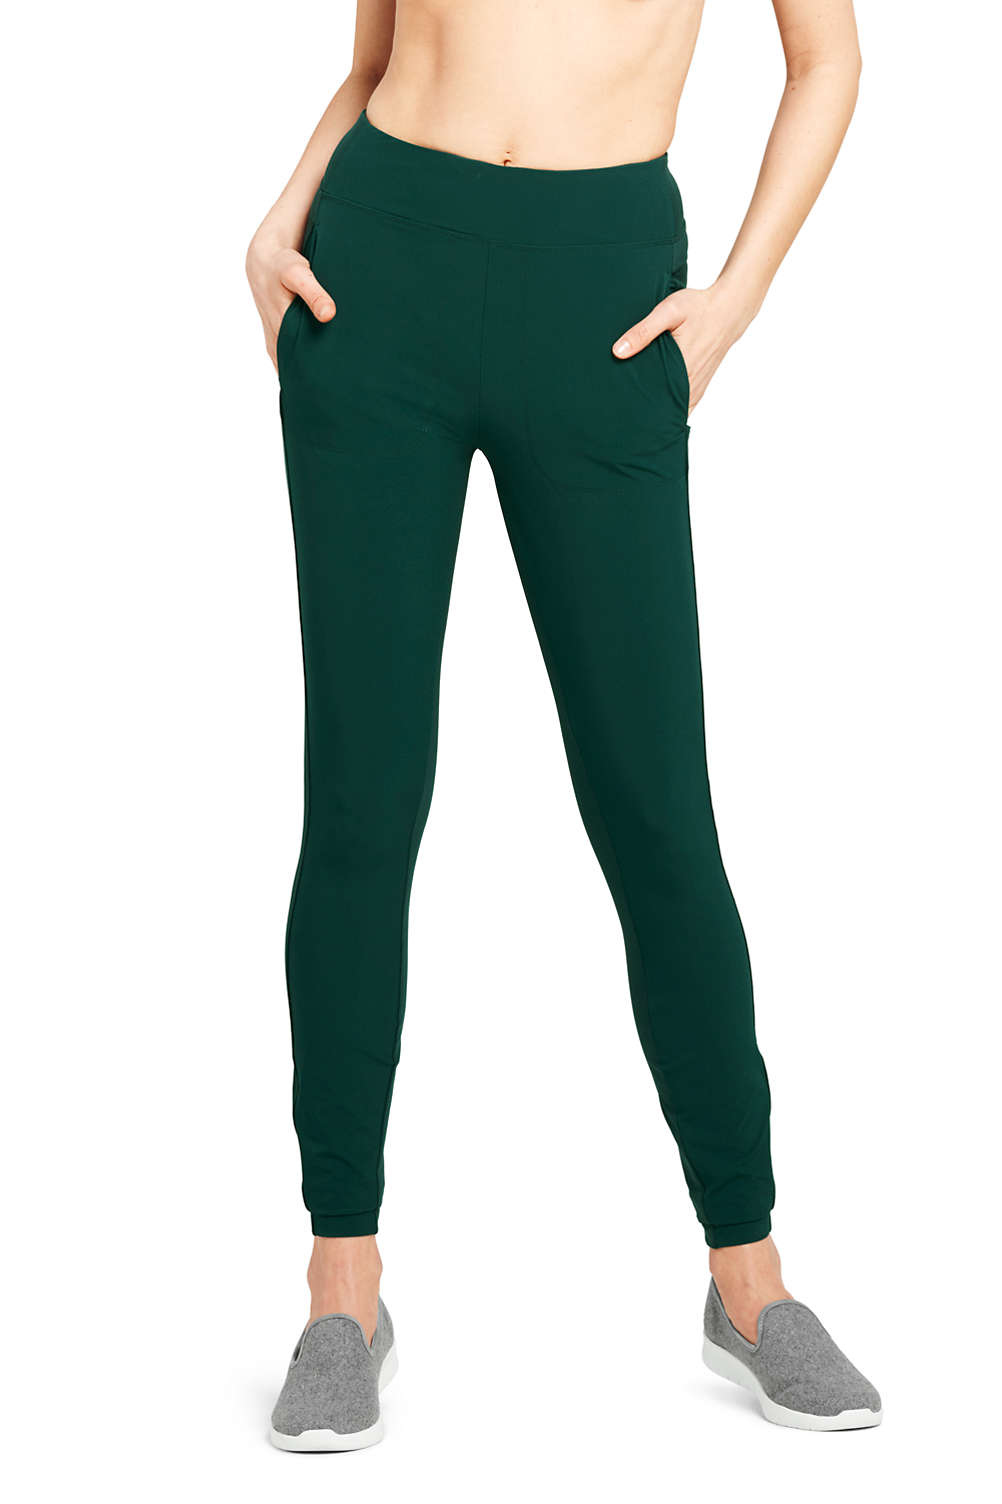 b50cf888a4 Women's Active Hybrid Leggings from Lands' End